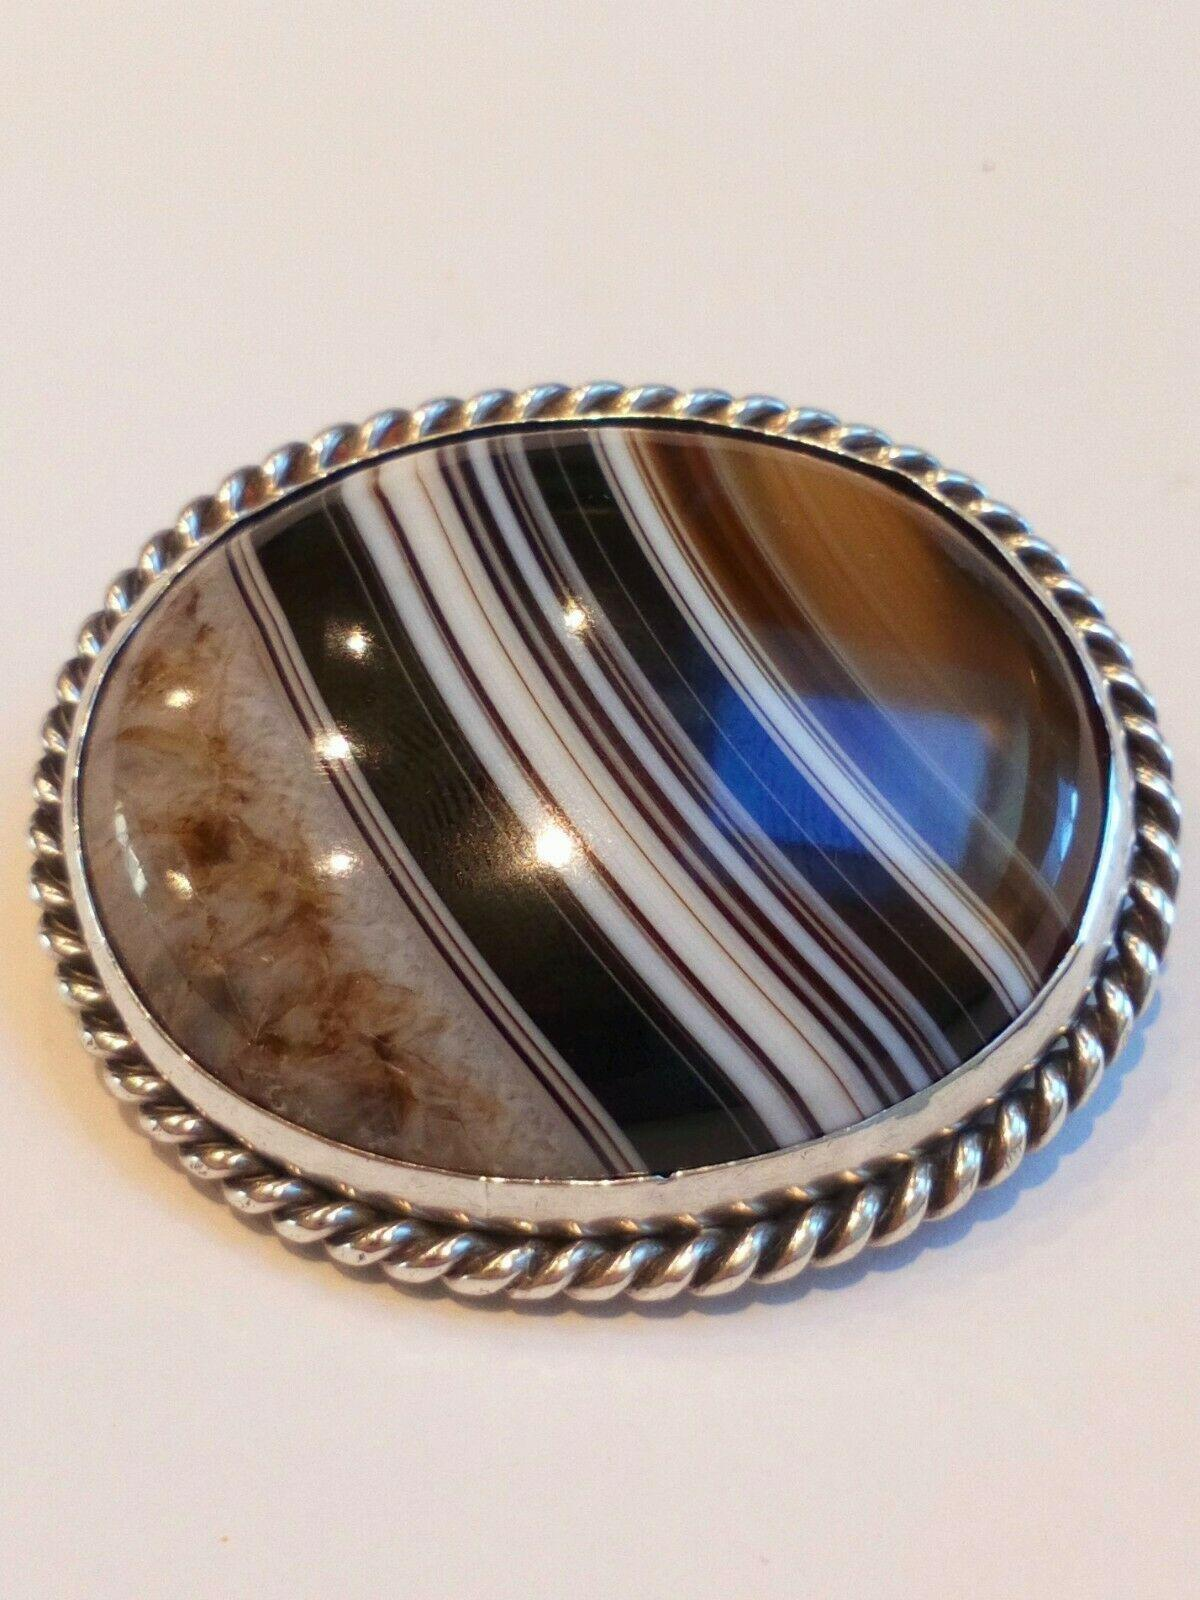 Antique Victorian Scottish Banded Agate Large Specimen Brooch Silver Mount c 1880